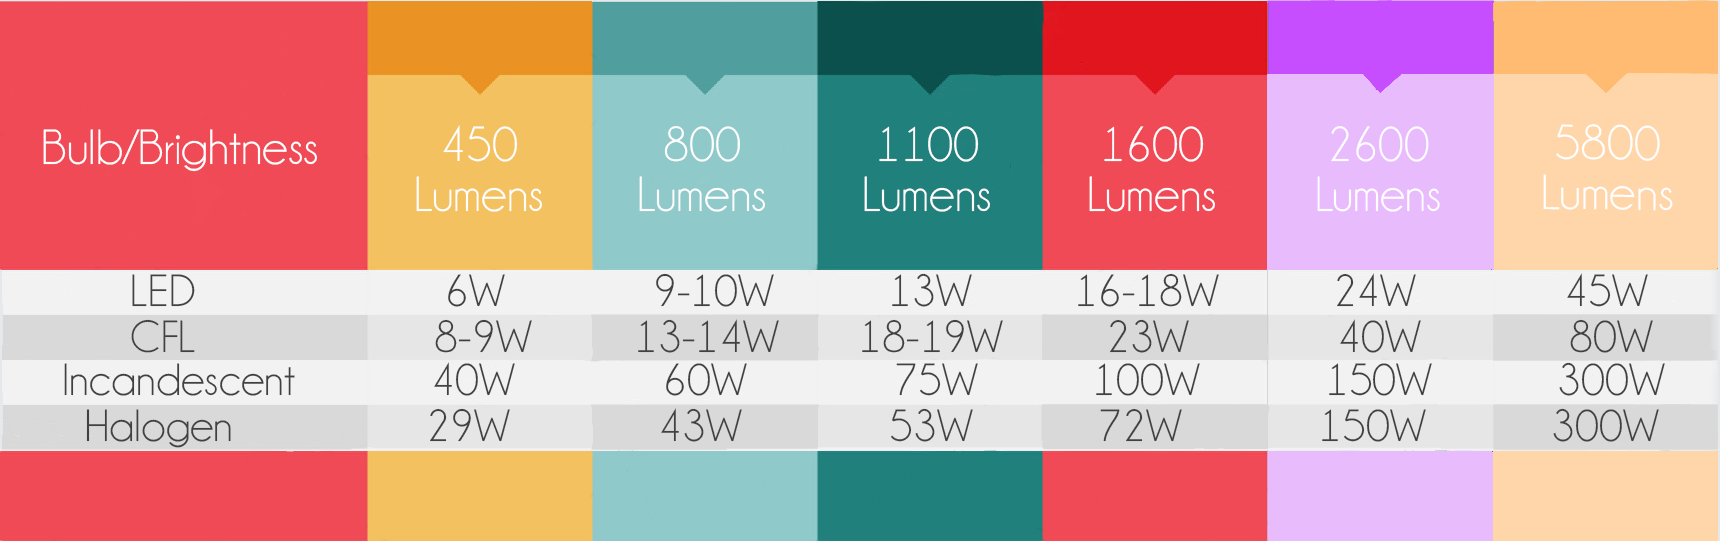 What Are Lumens And How Many Do I Need